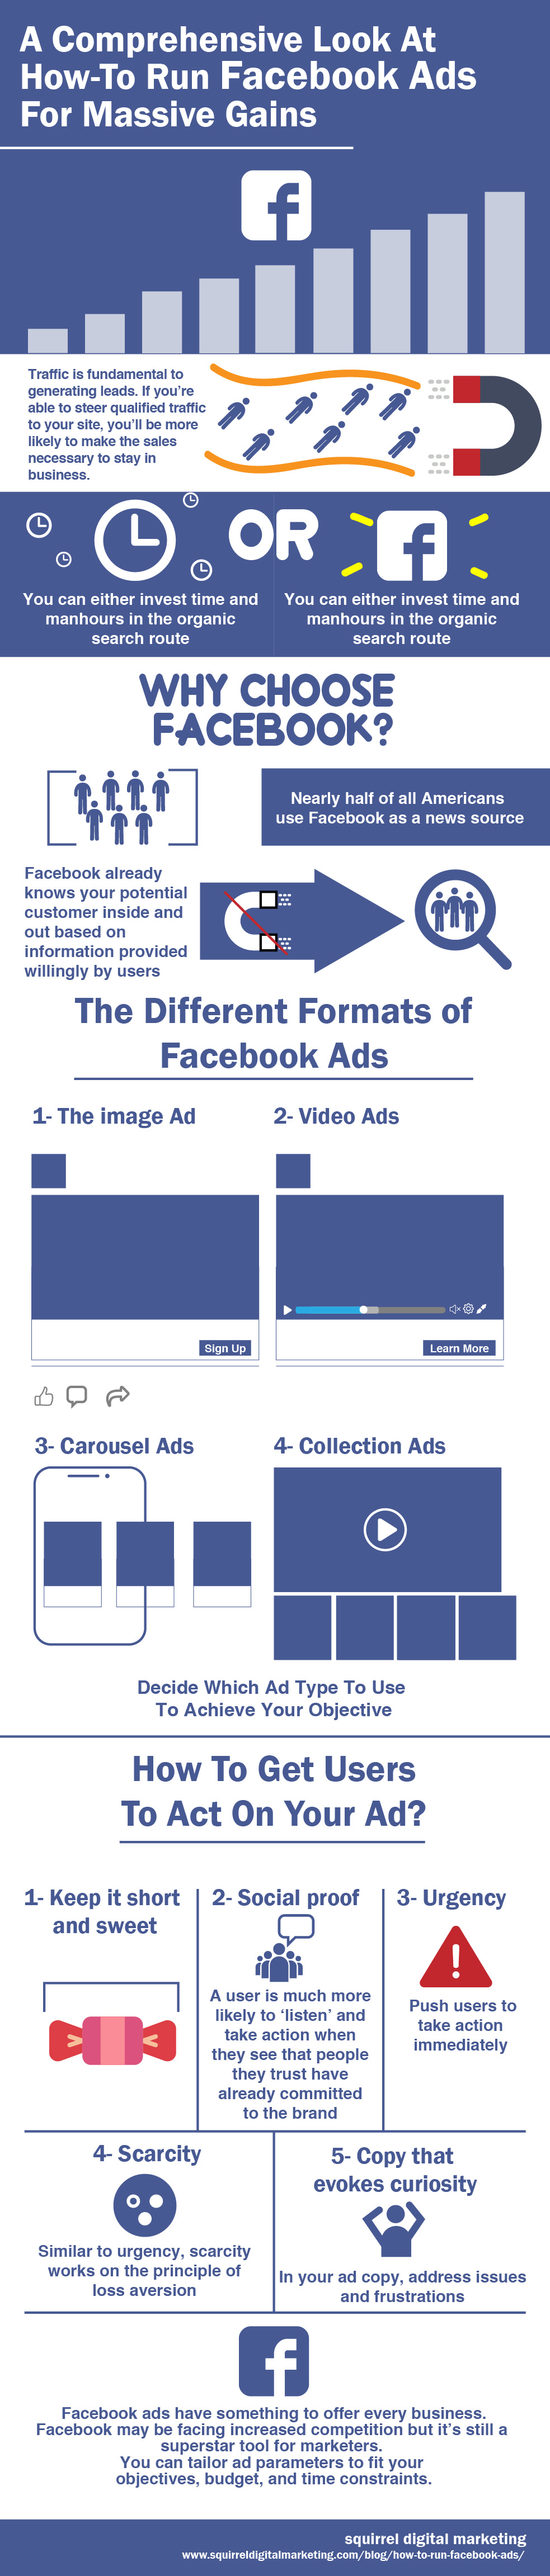 How to Run Facebook Ads for Massive Gains